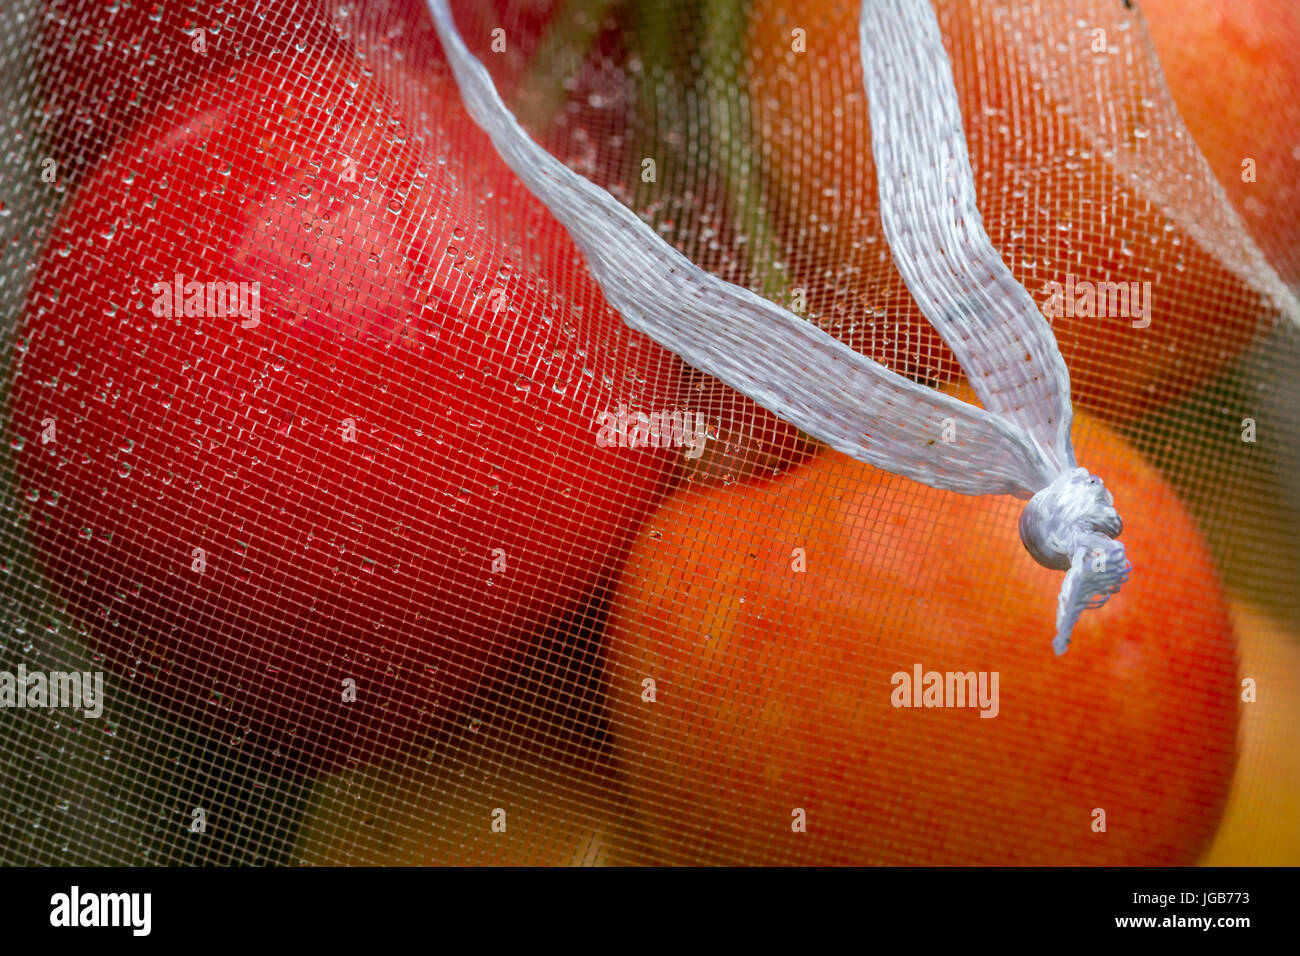 Cherries ripening safely behind organza wedding favour bags for protection against birds and bugs, Yorkshire, England, - Stock Image